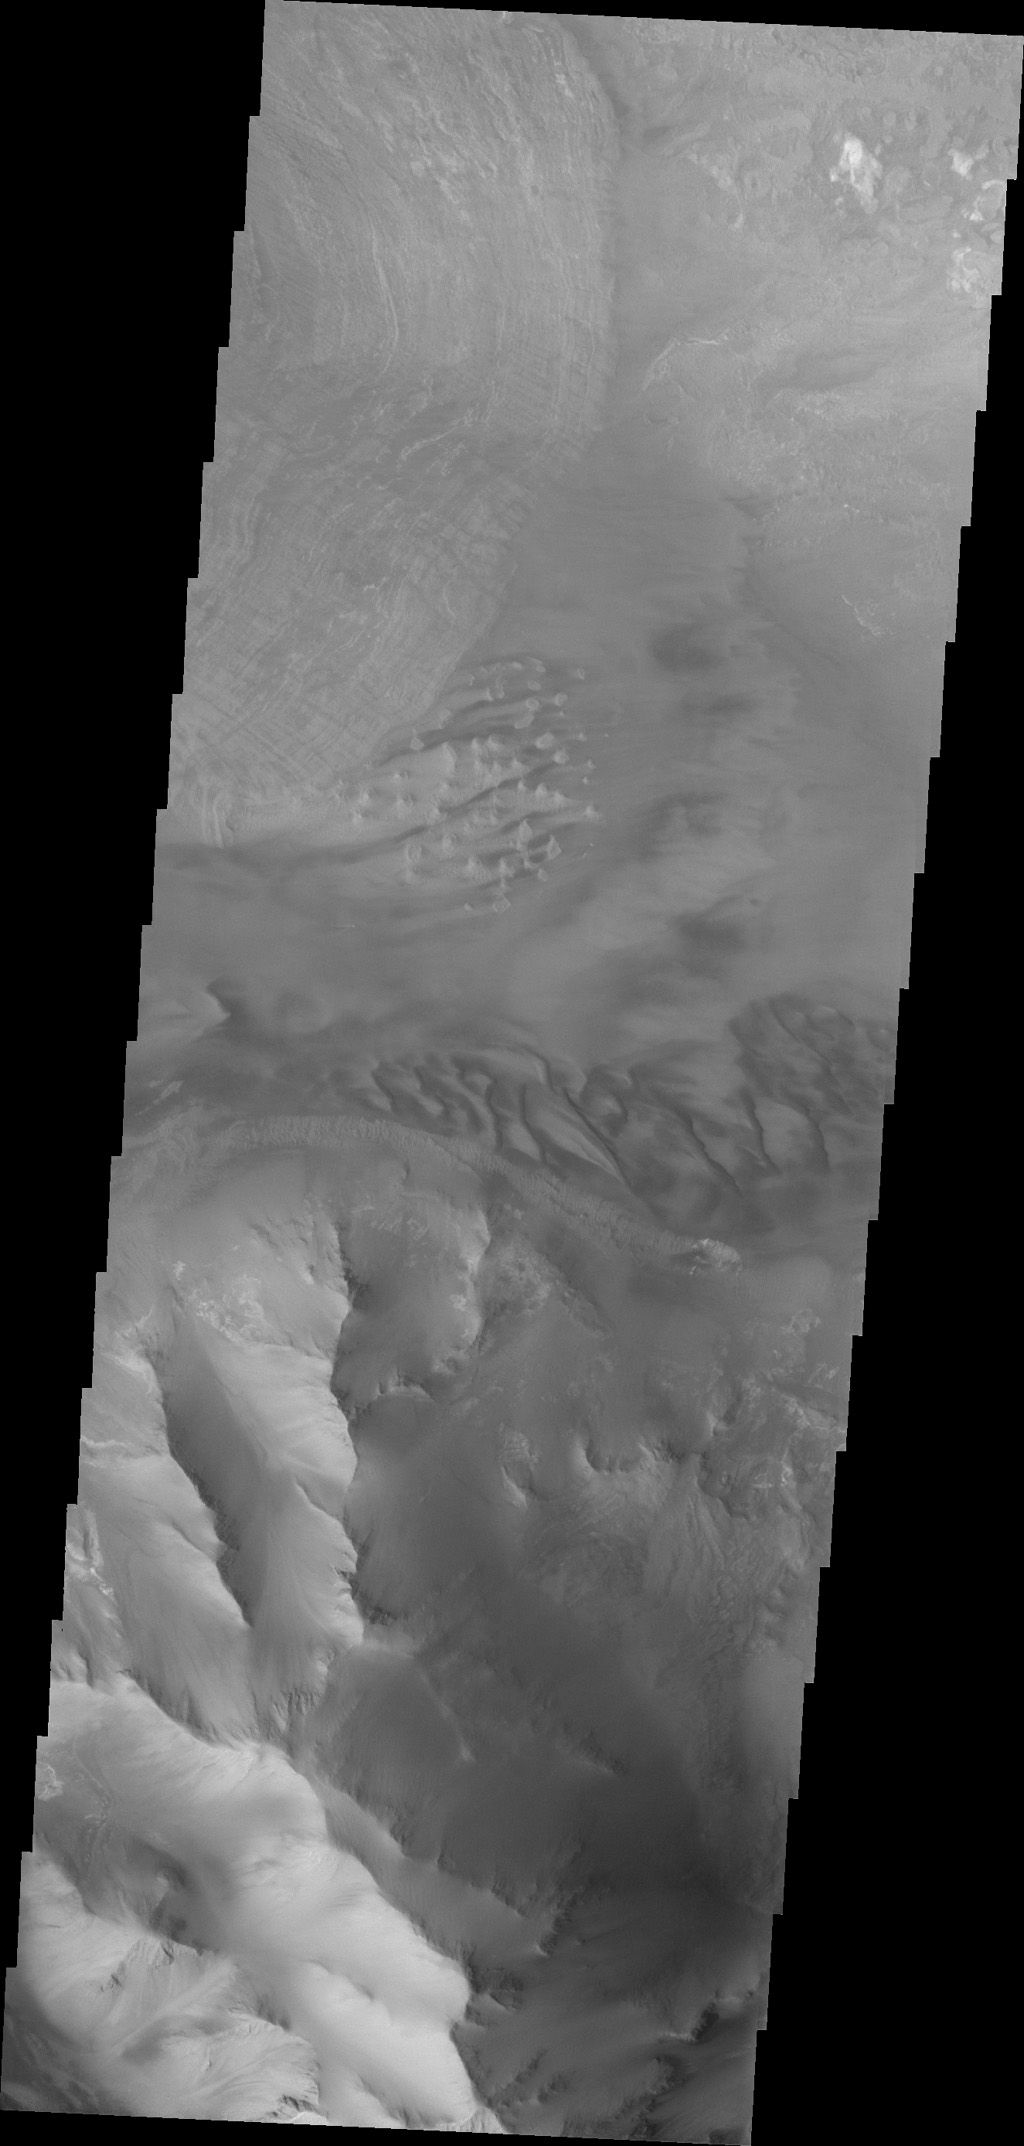 Dunes and the distal end of a landslide deposit are evident in this image from NASA's 2001 Mars Odyssey of eastern Ius Chasma.